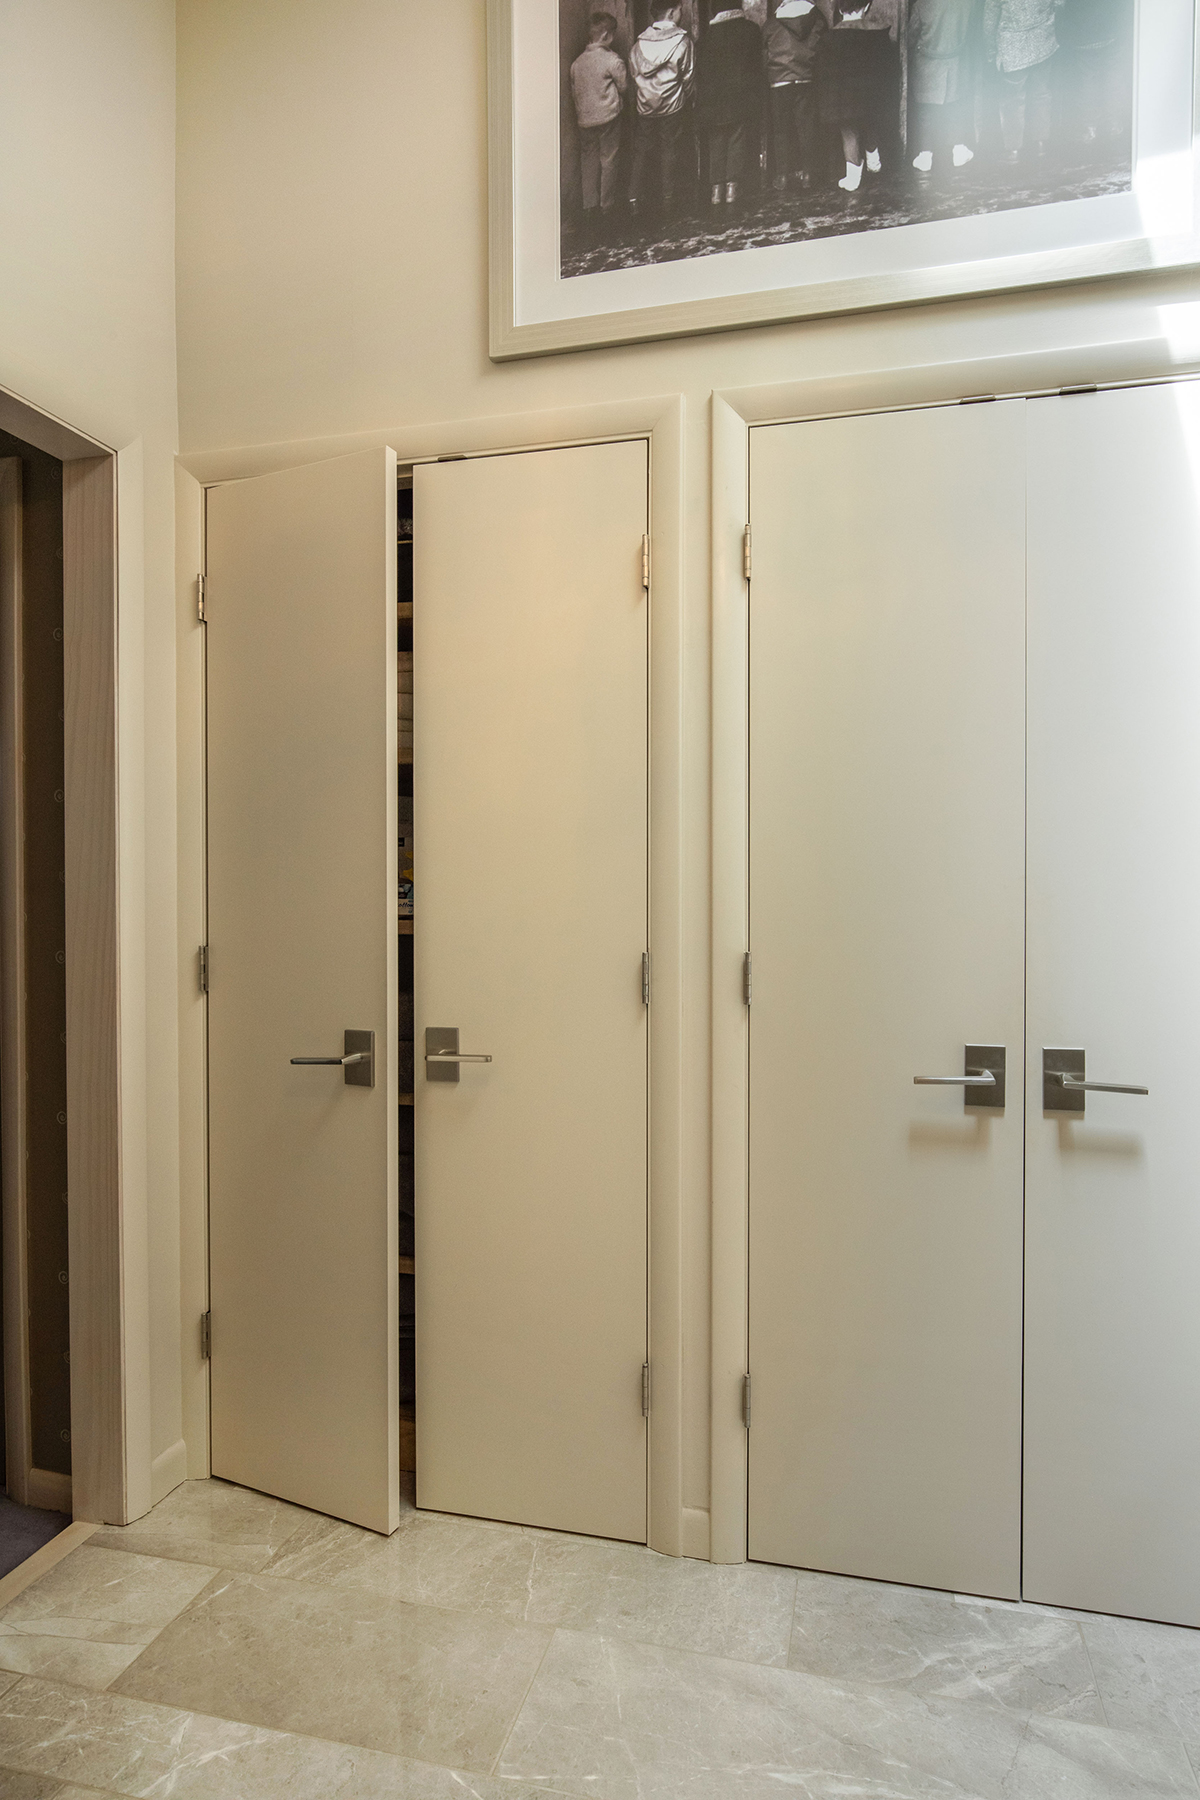 Angled foot shelf for shaving, window in shower, window in stool room, vaulted ceiling in bathroom, skylights in bathroom, Contemporary bathroom, master bathroom ideas, heated towel rack, curved towel rack, recessed cabinets, storage cabinets, extra storage in bathroom, contemporary vent, Radiant floor heating